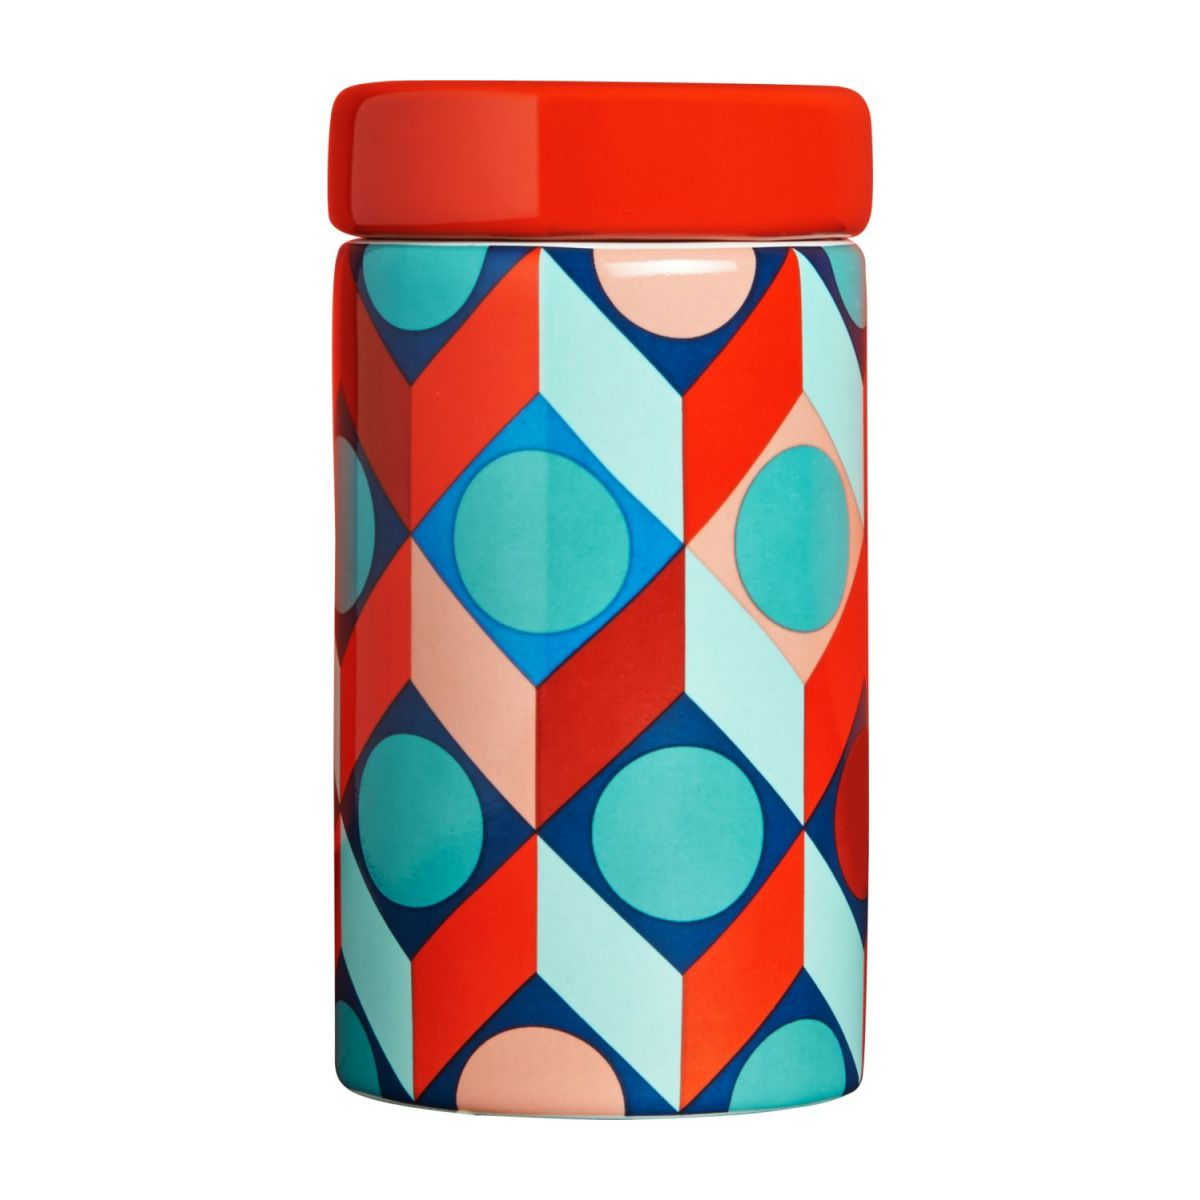 Spice jar with patterns n°3